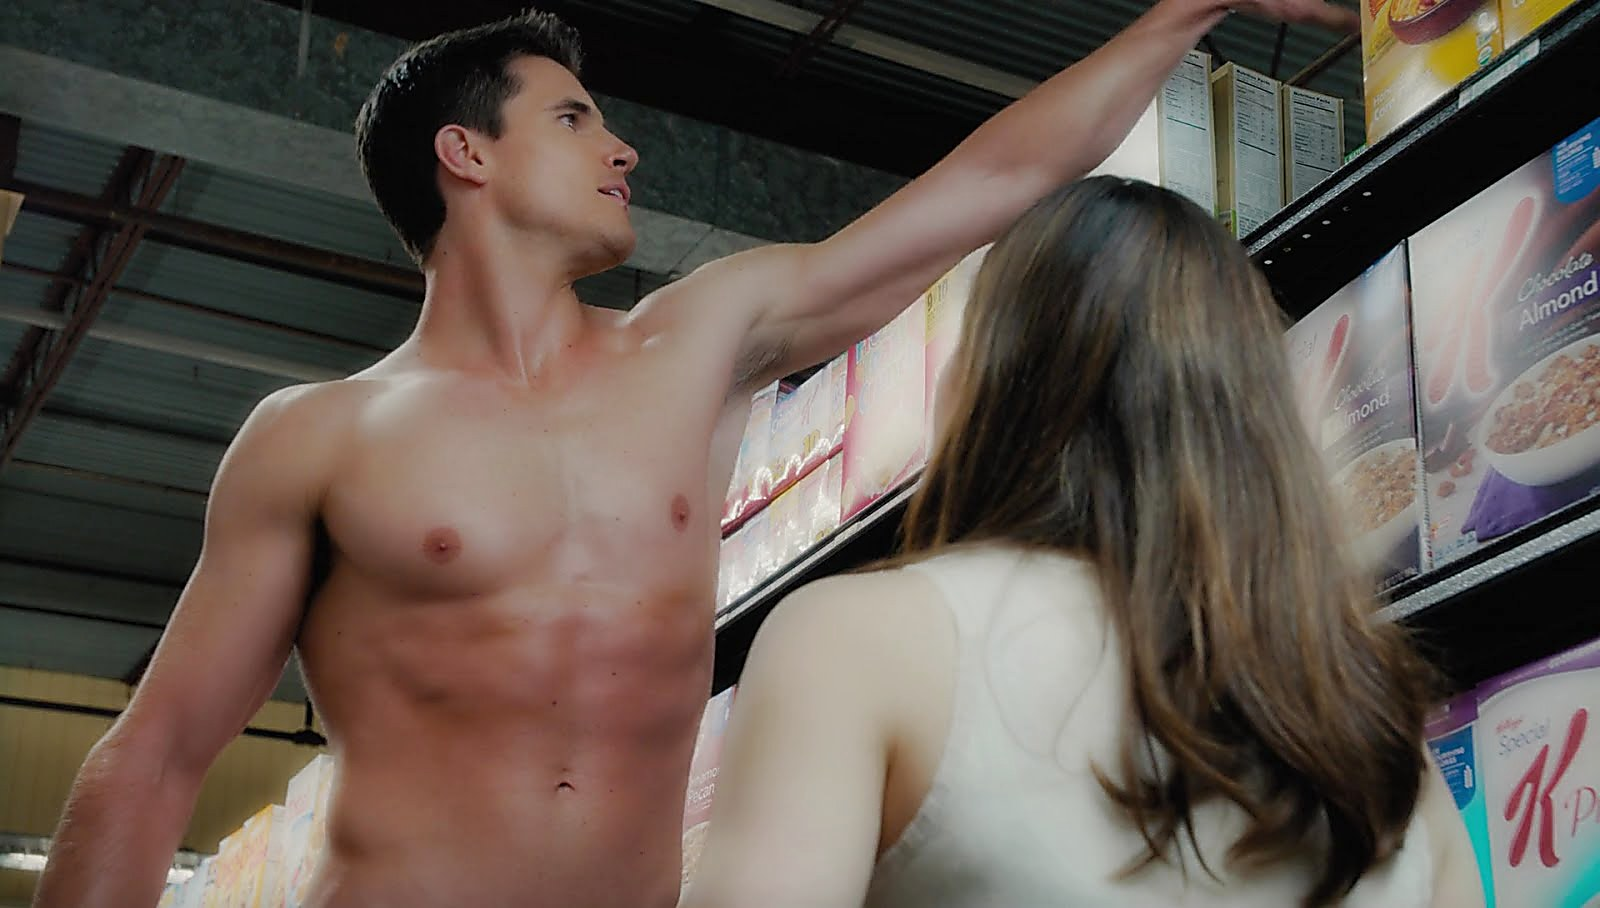 Robbie Amell sexy shirtless scene February 26, 2018, 10am